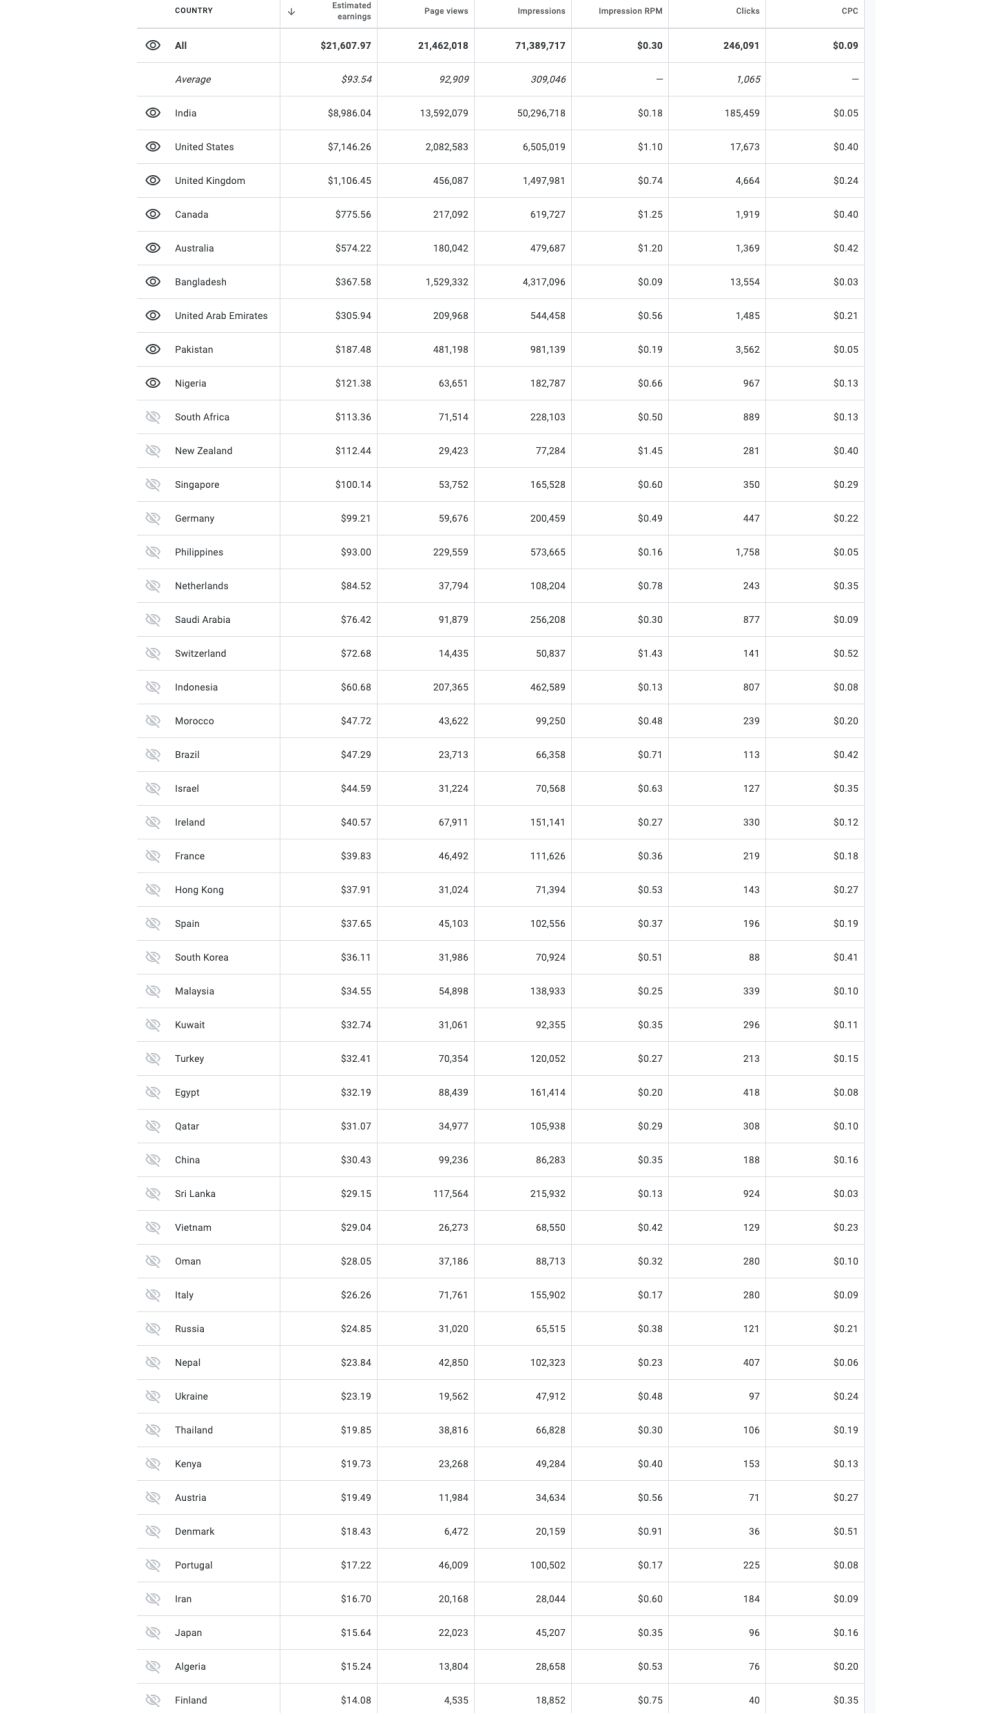 cpc rates by country